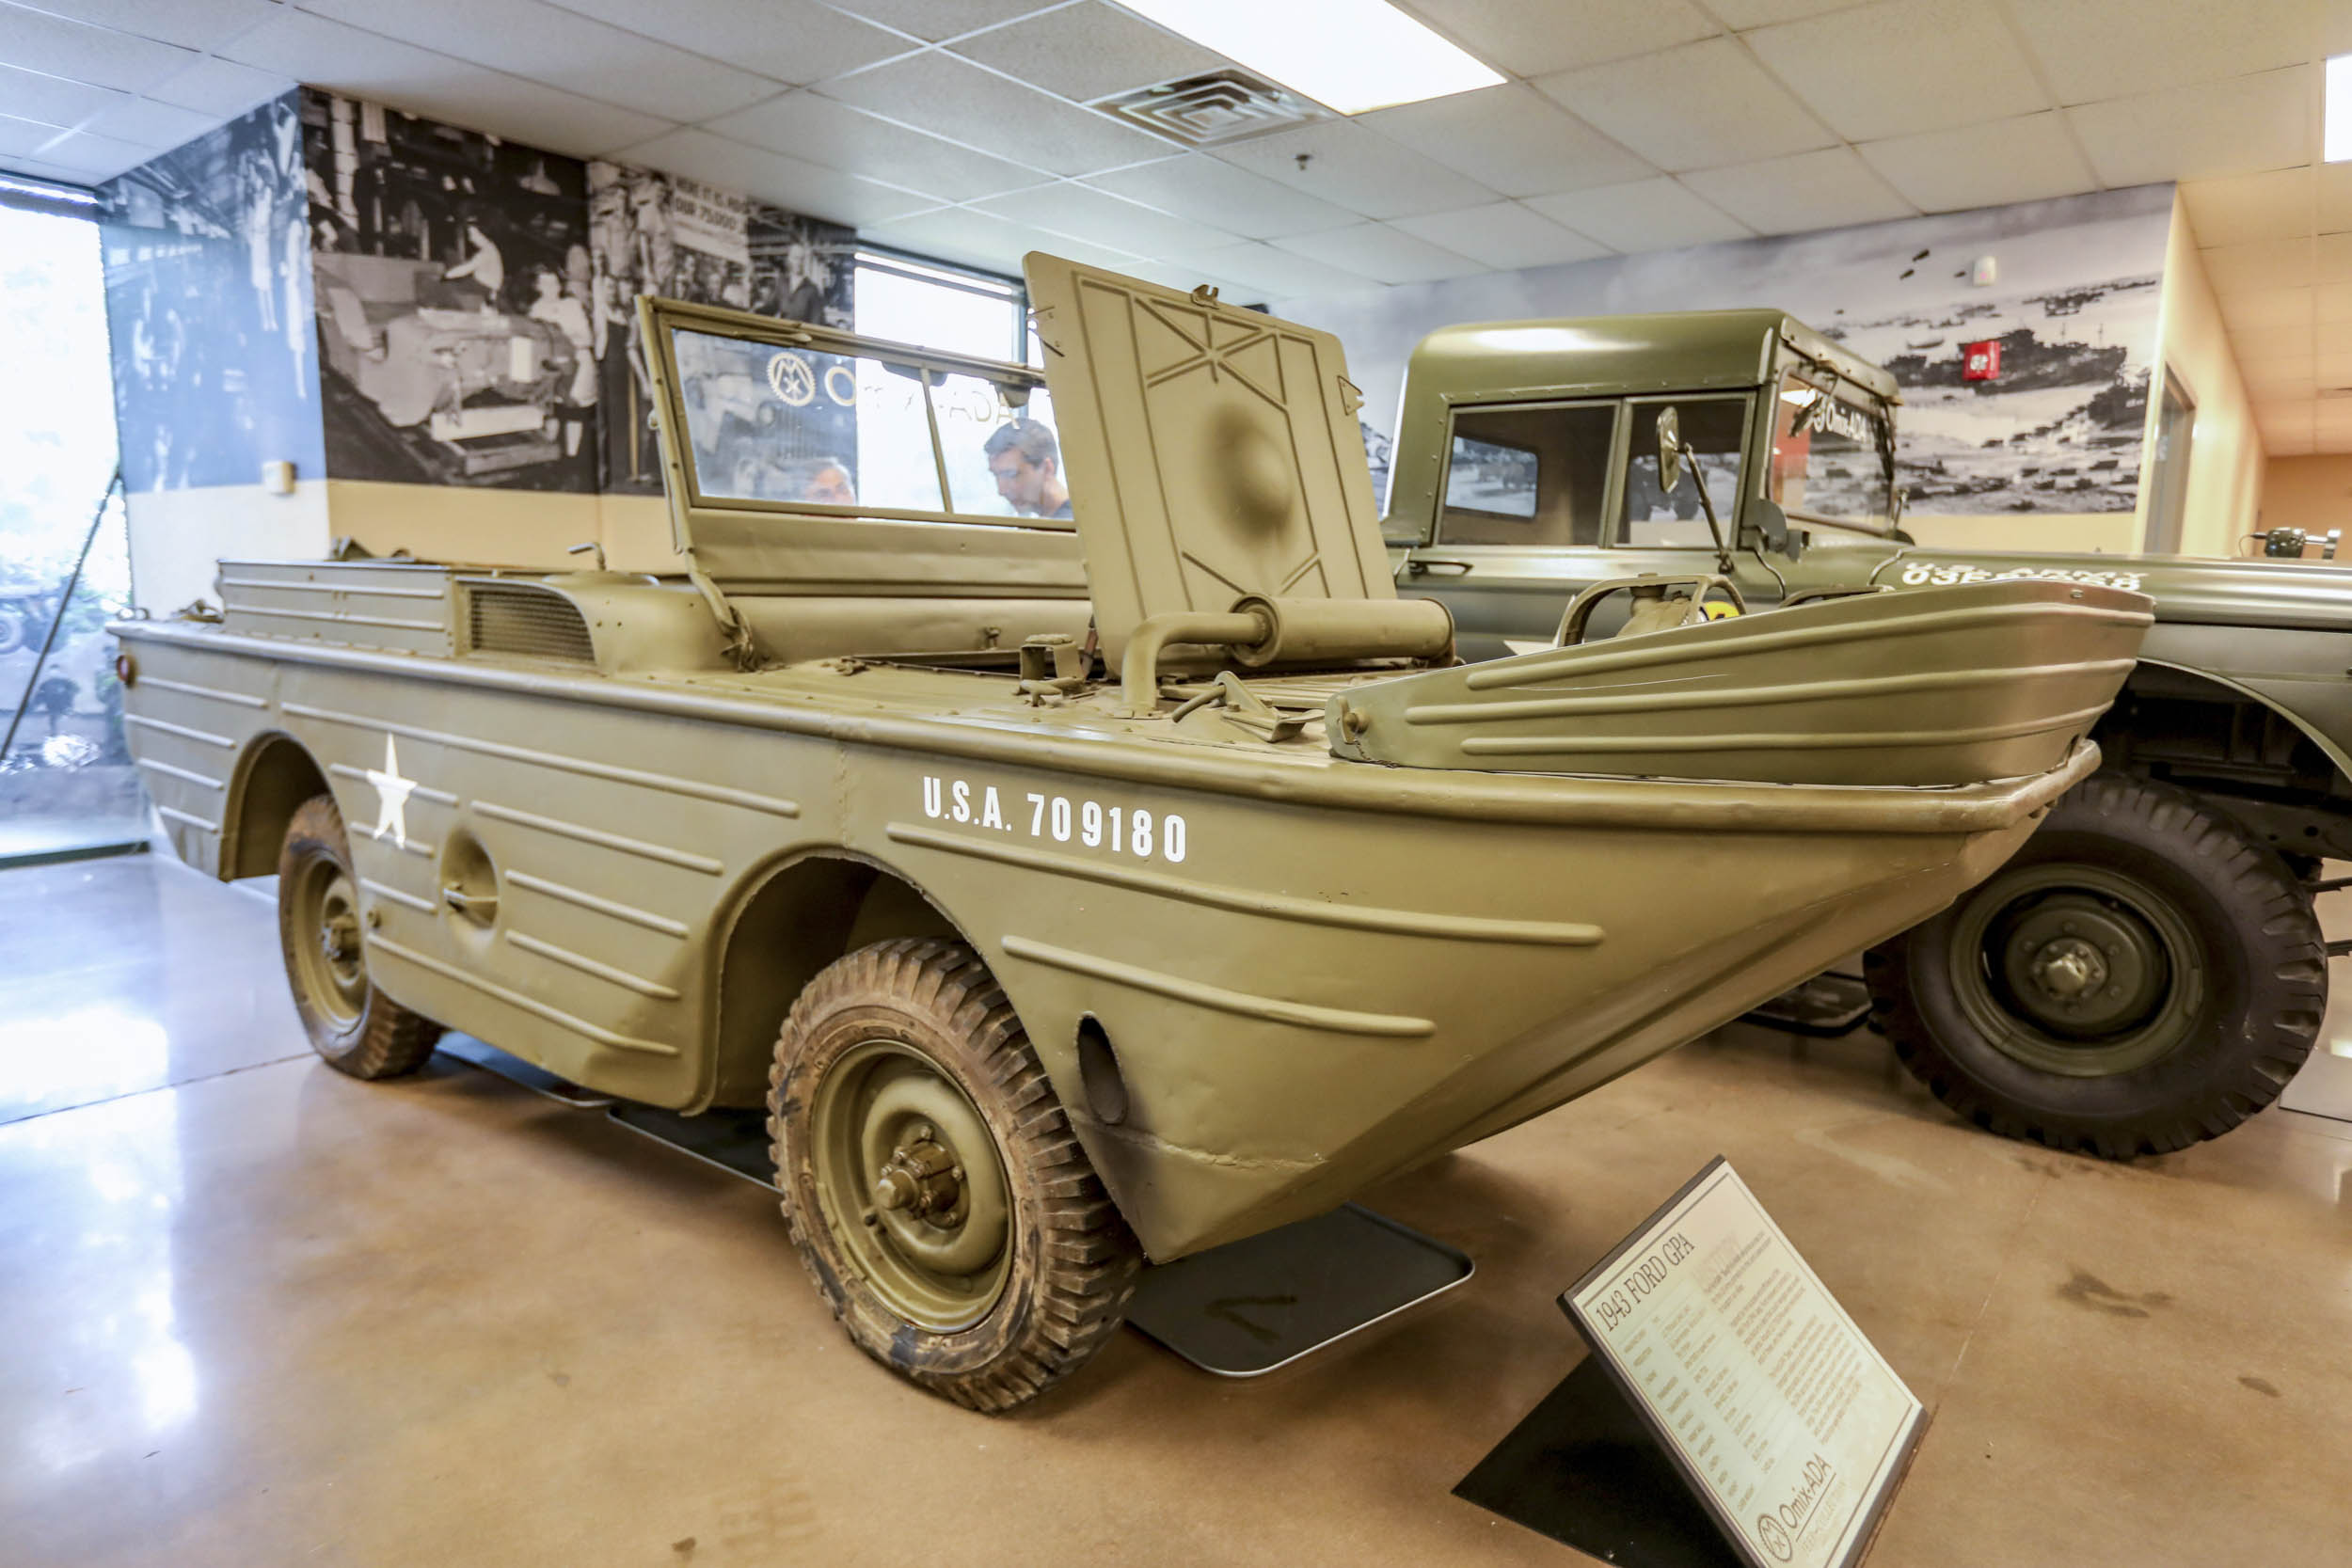 Ford's attempt at an amphibious Jeep, the GPA was almost as ungainly on land as it was on water. Many ended up in WWII service in the Soviet Union.